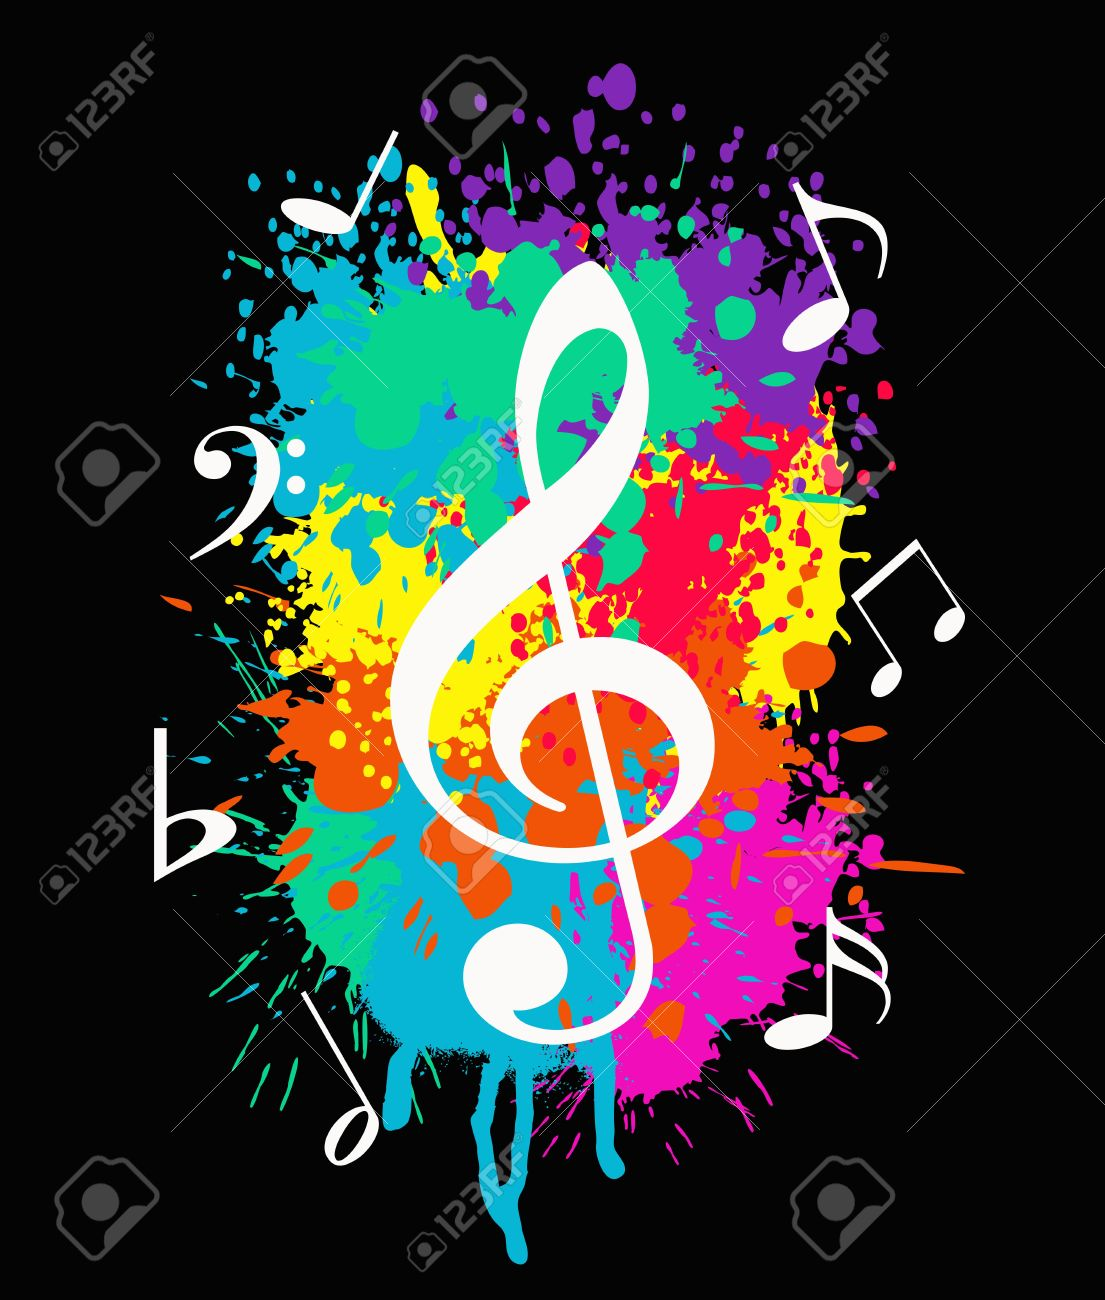 Wallpaper With Music Symbols On Colorful Background Stock Photo